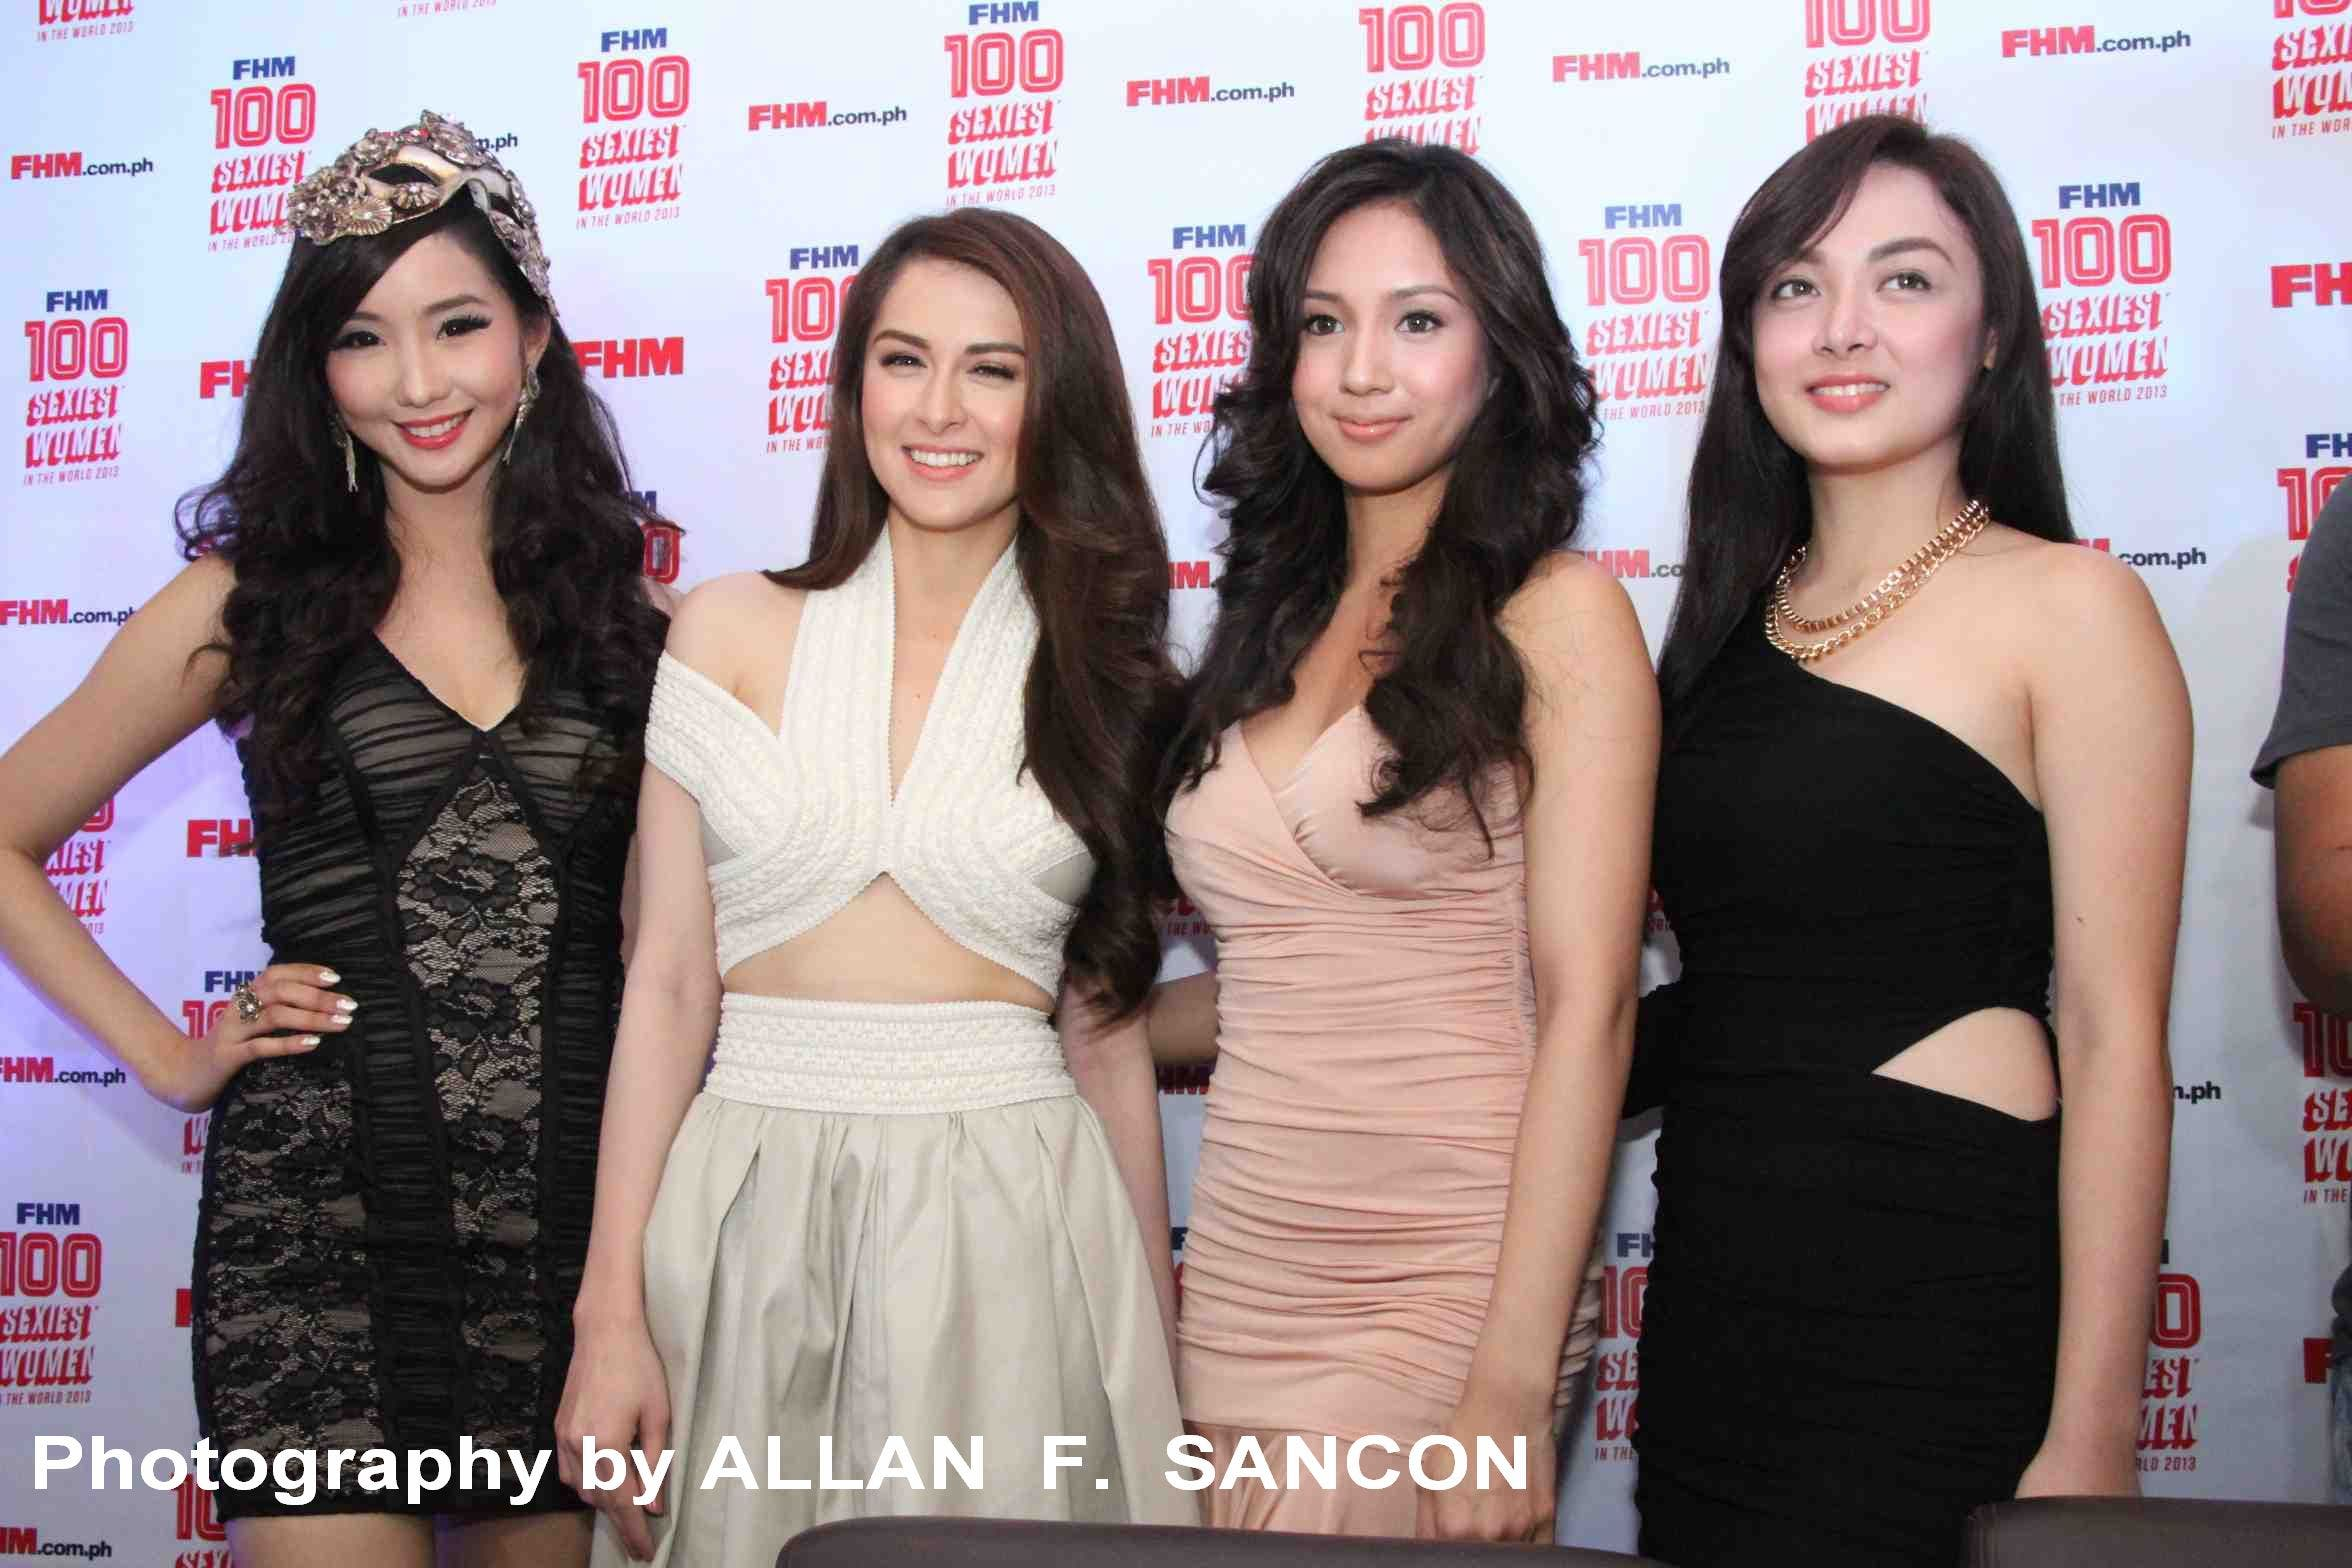 FHM 100 Sexiest (4)